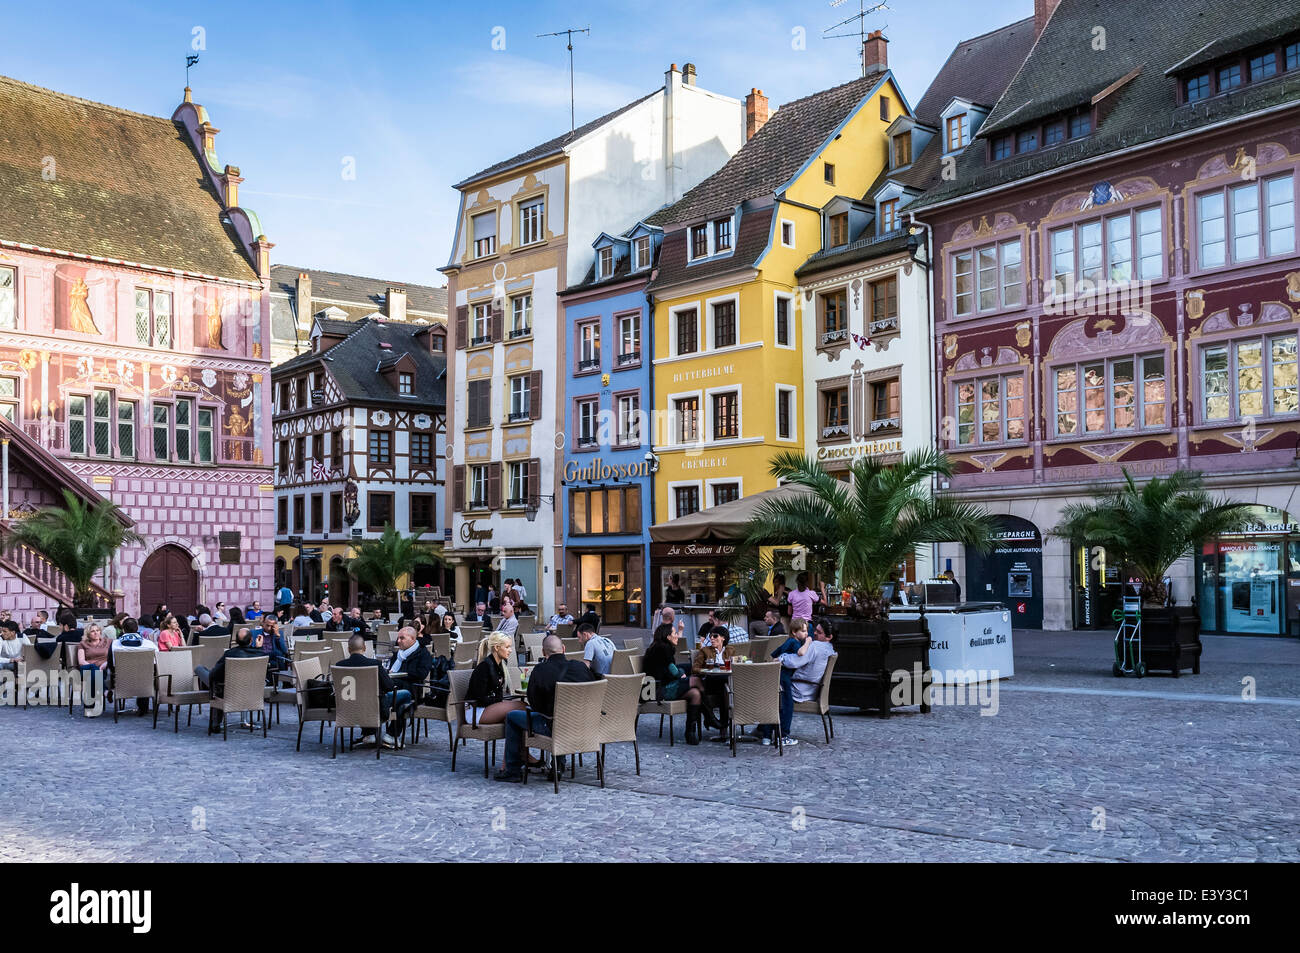 cafe terrace and ancient houses place de la reunion square mulhouse stock photo 71280833 alamy. Black Bedroom Furniture Sets. Home Design Ideas